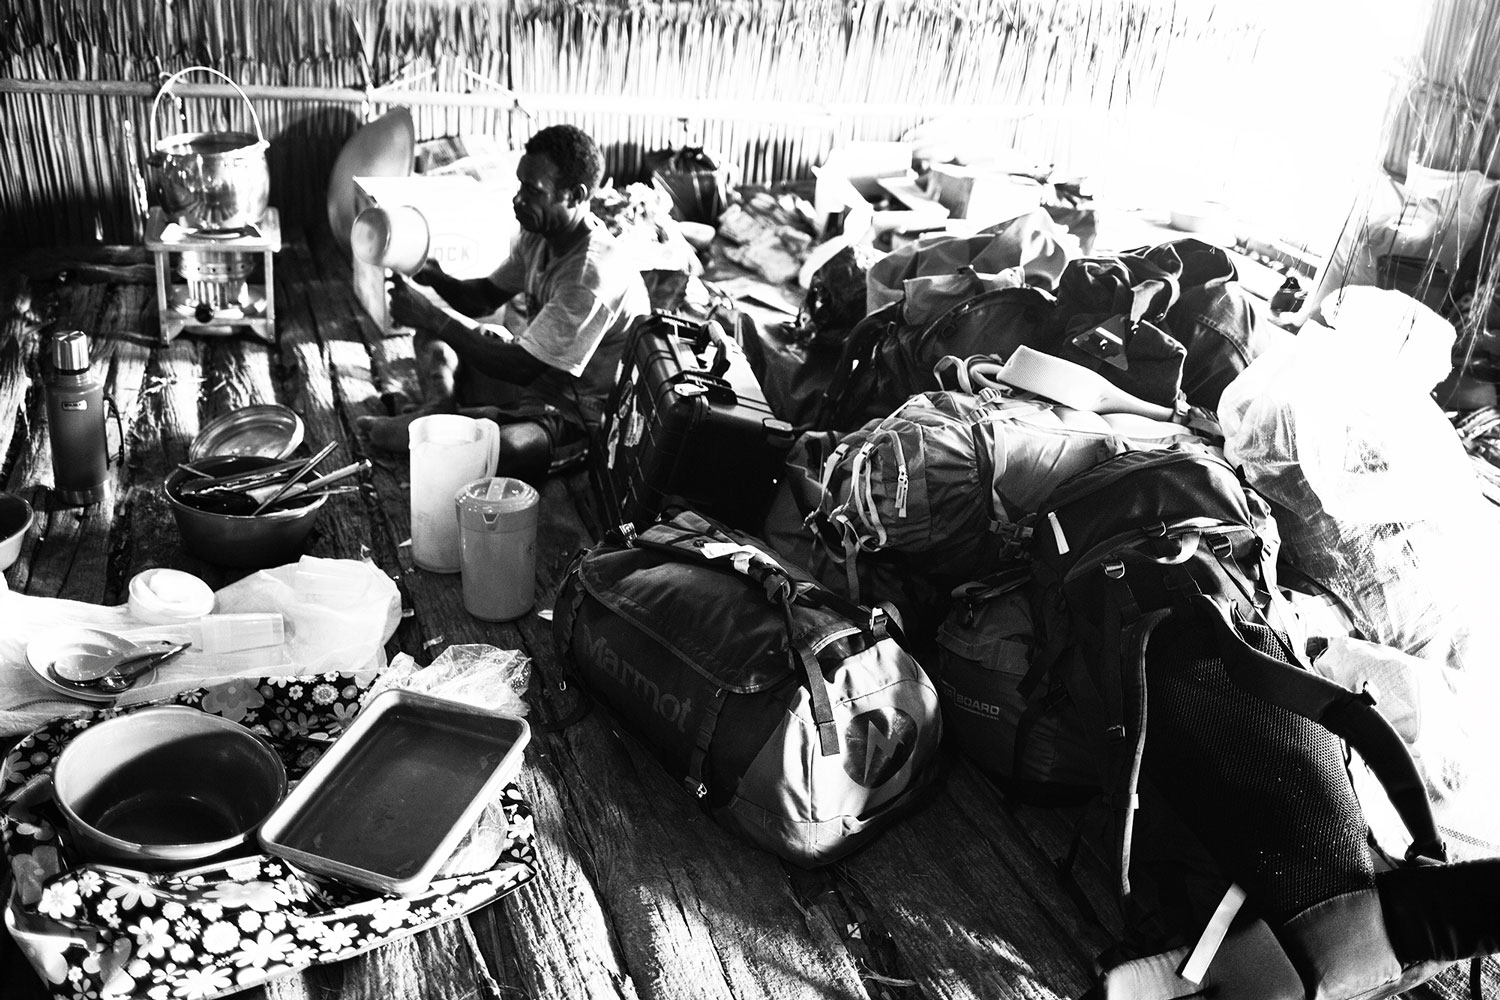 asmat camp with travel luggage